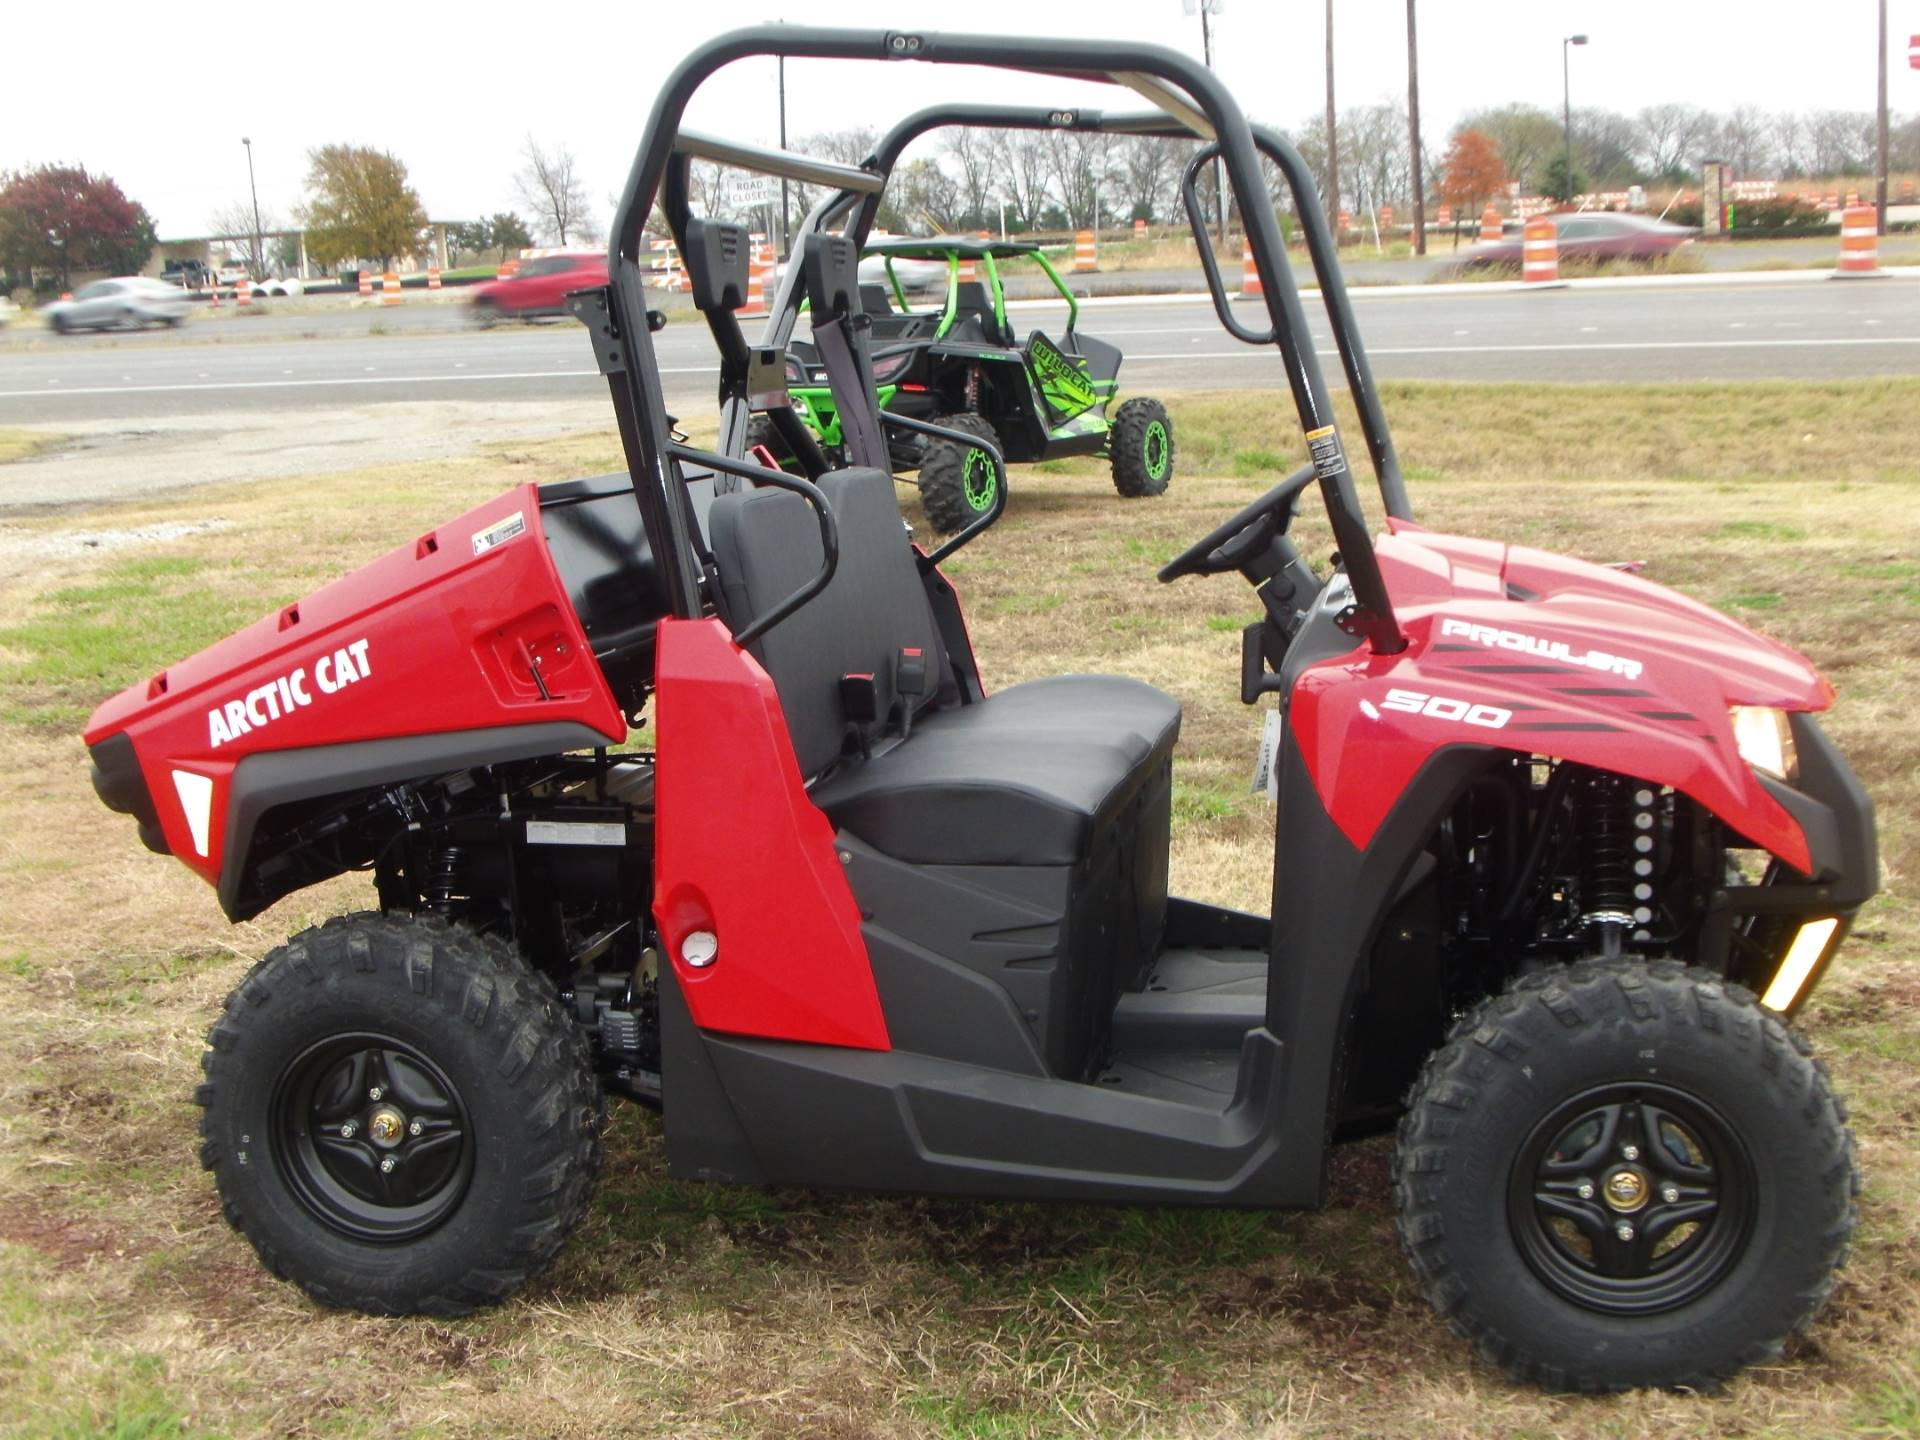 New 2017 Arctic Cat Prowler 500 Utility Vehicles In ...